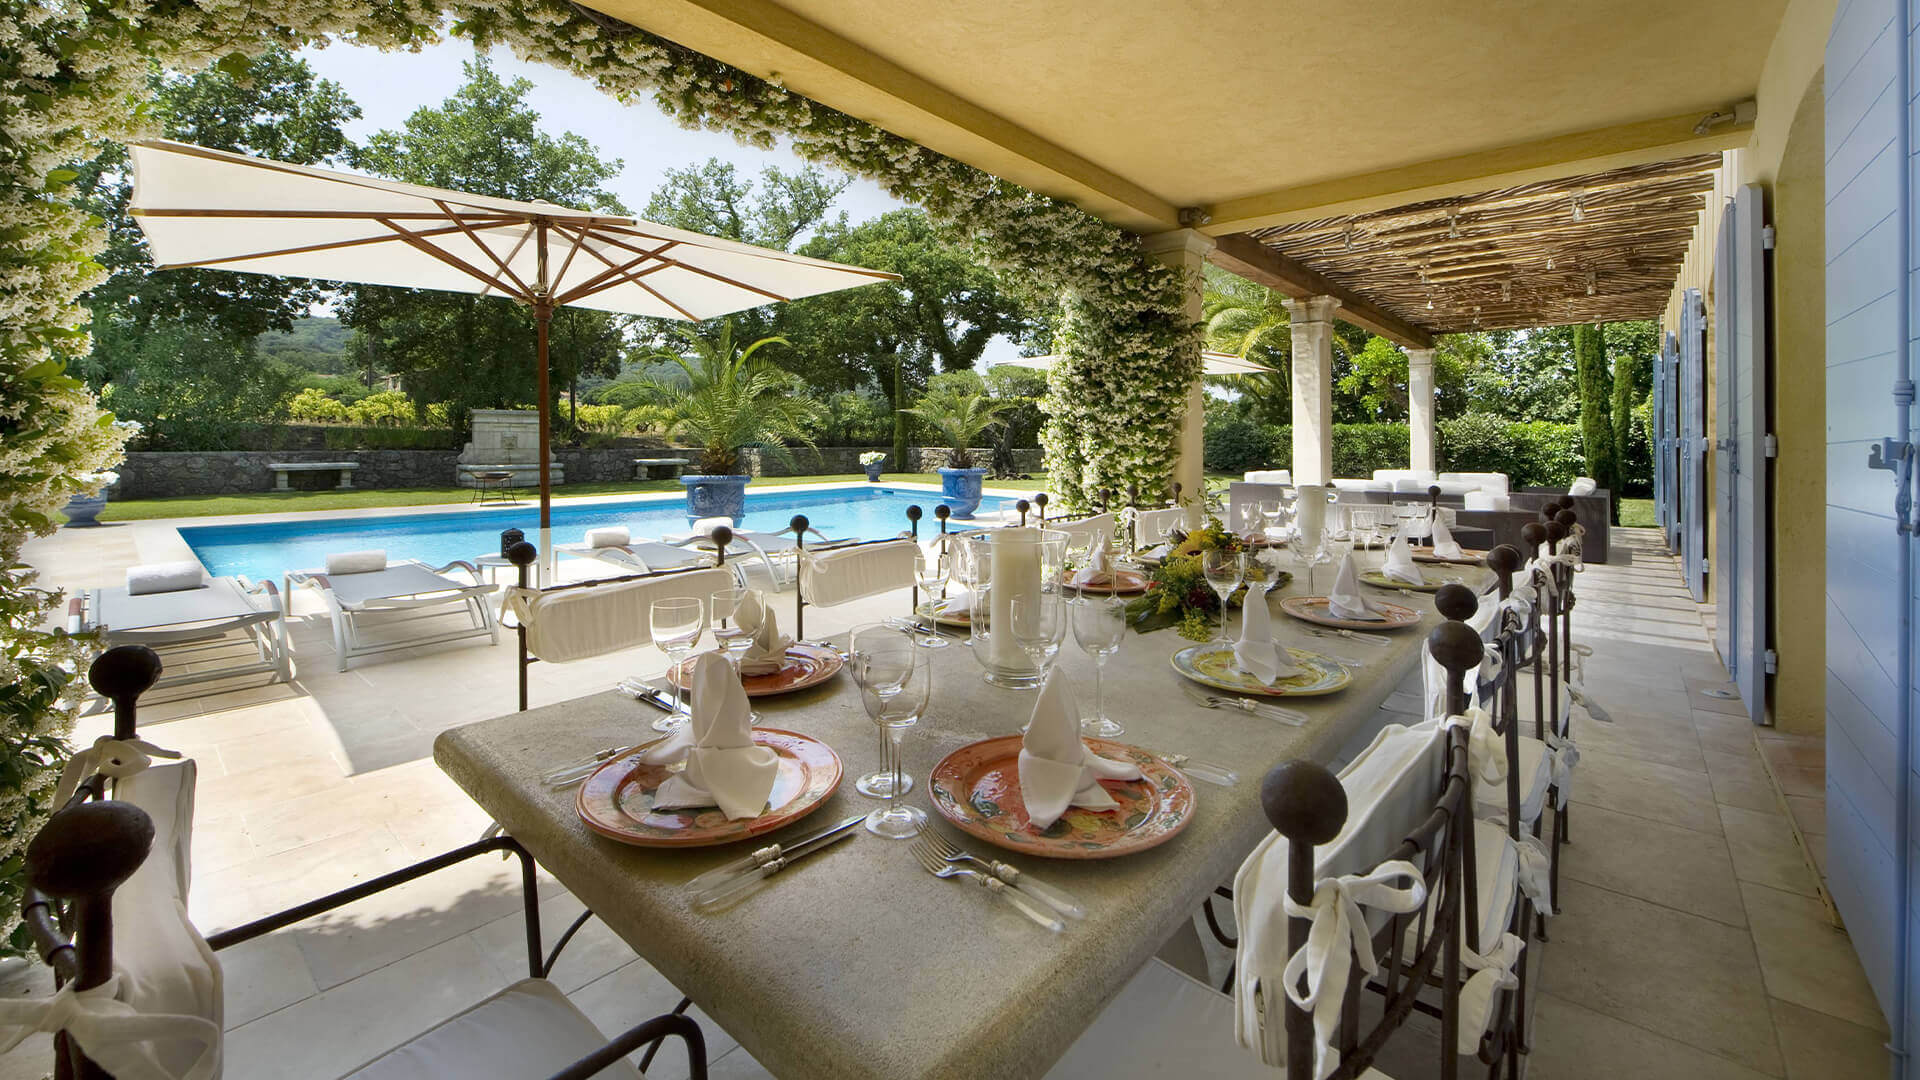 Saint Tropez Villa outside dining area with set table and swimming pool